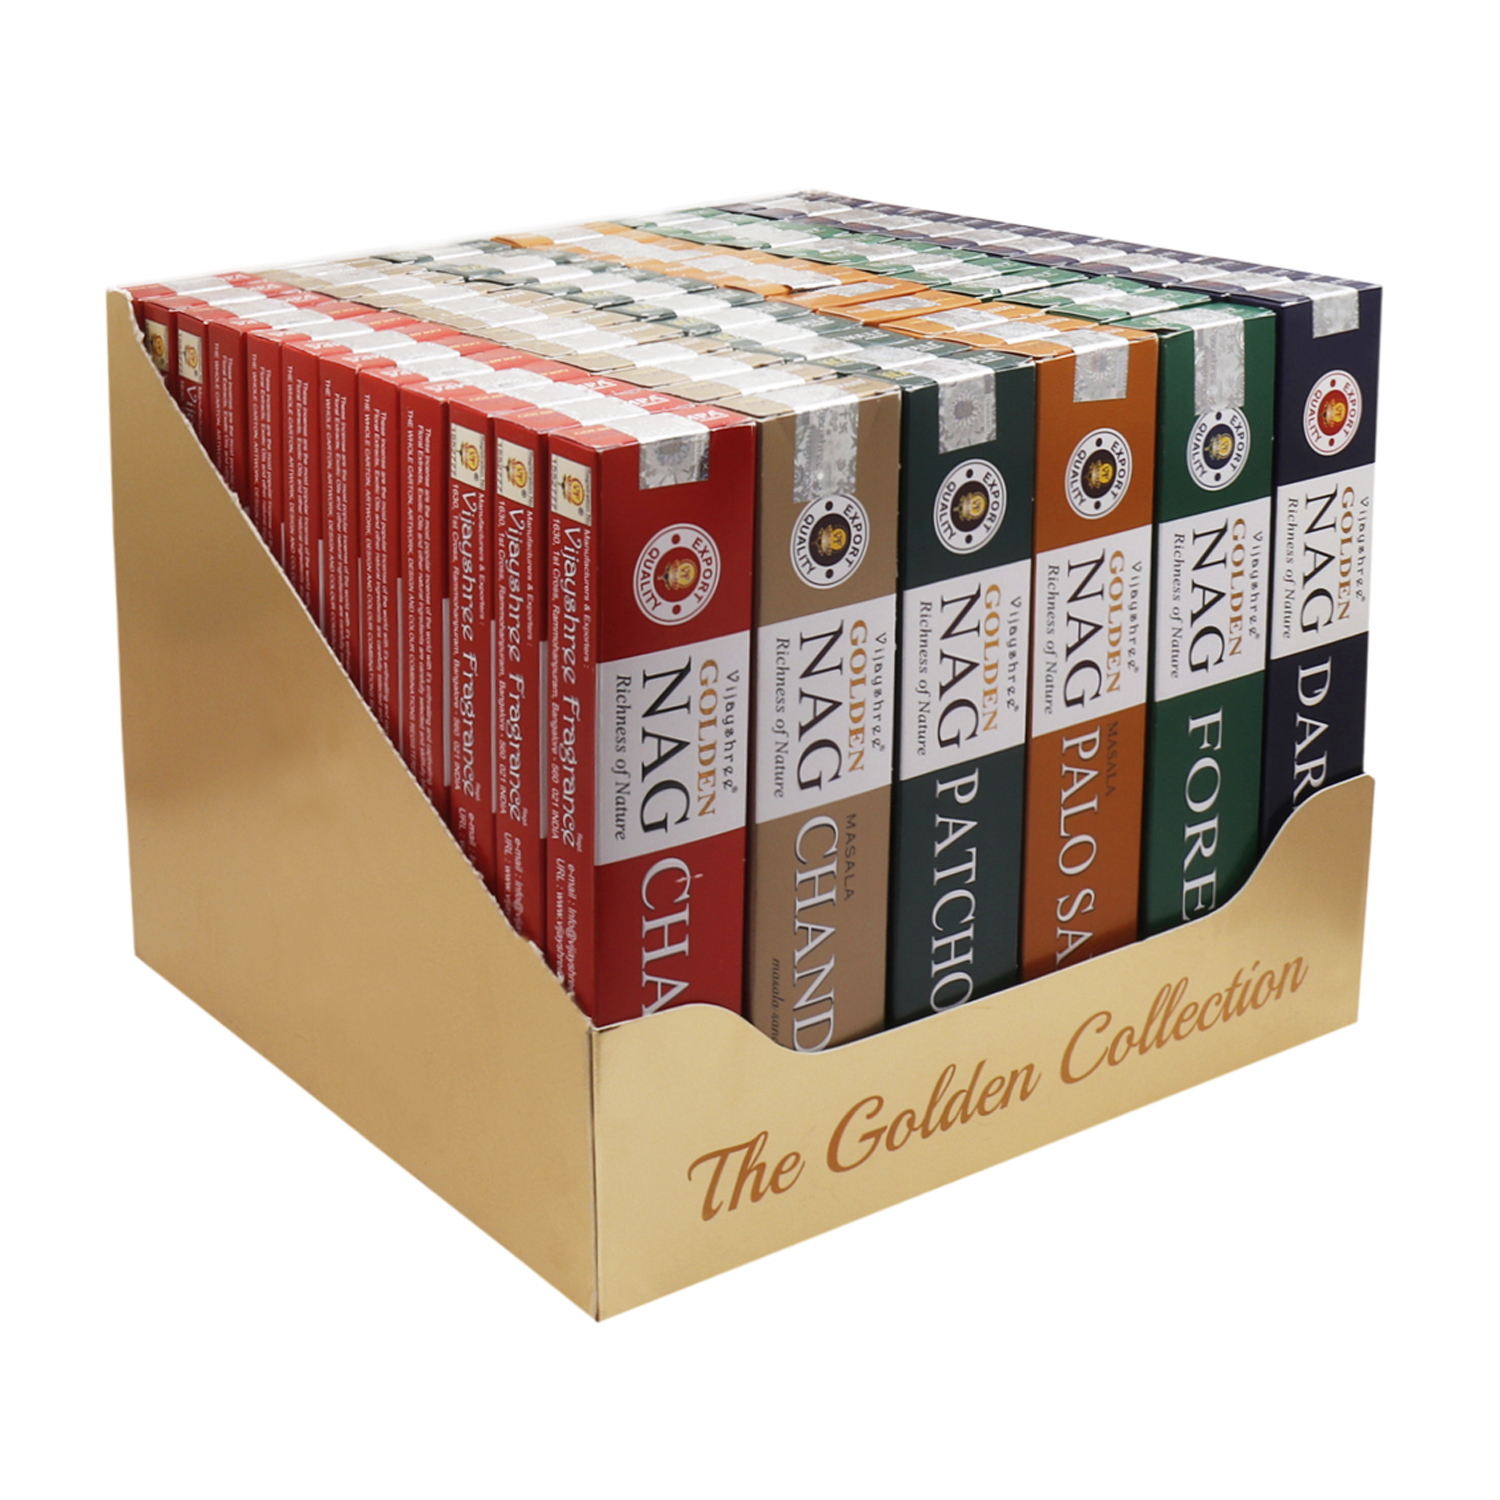 72 x 15g Golden Collection Box - 6 Assorted Fragrances